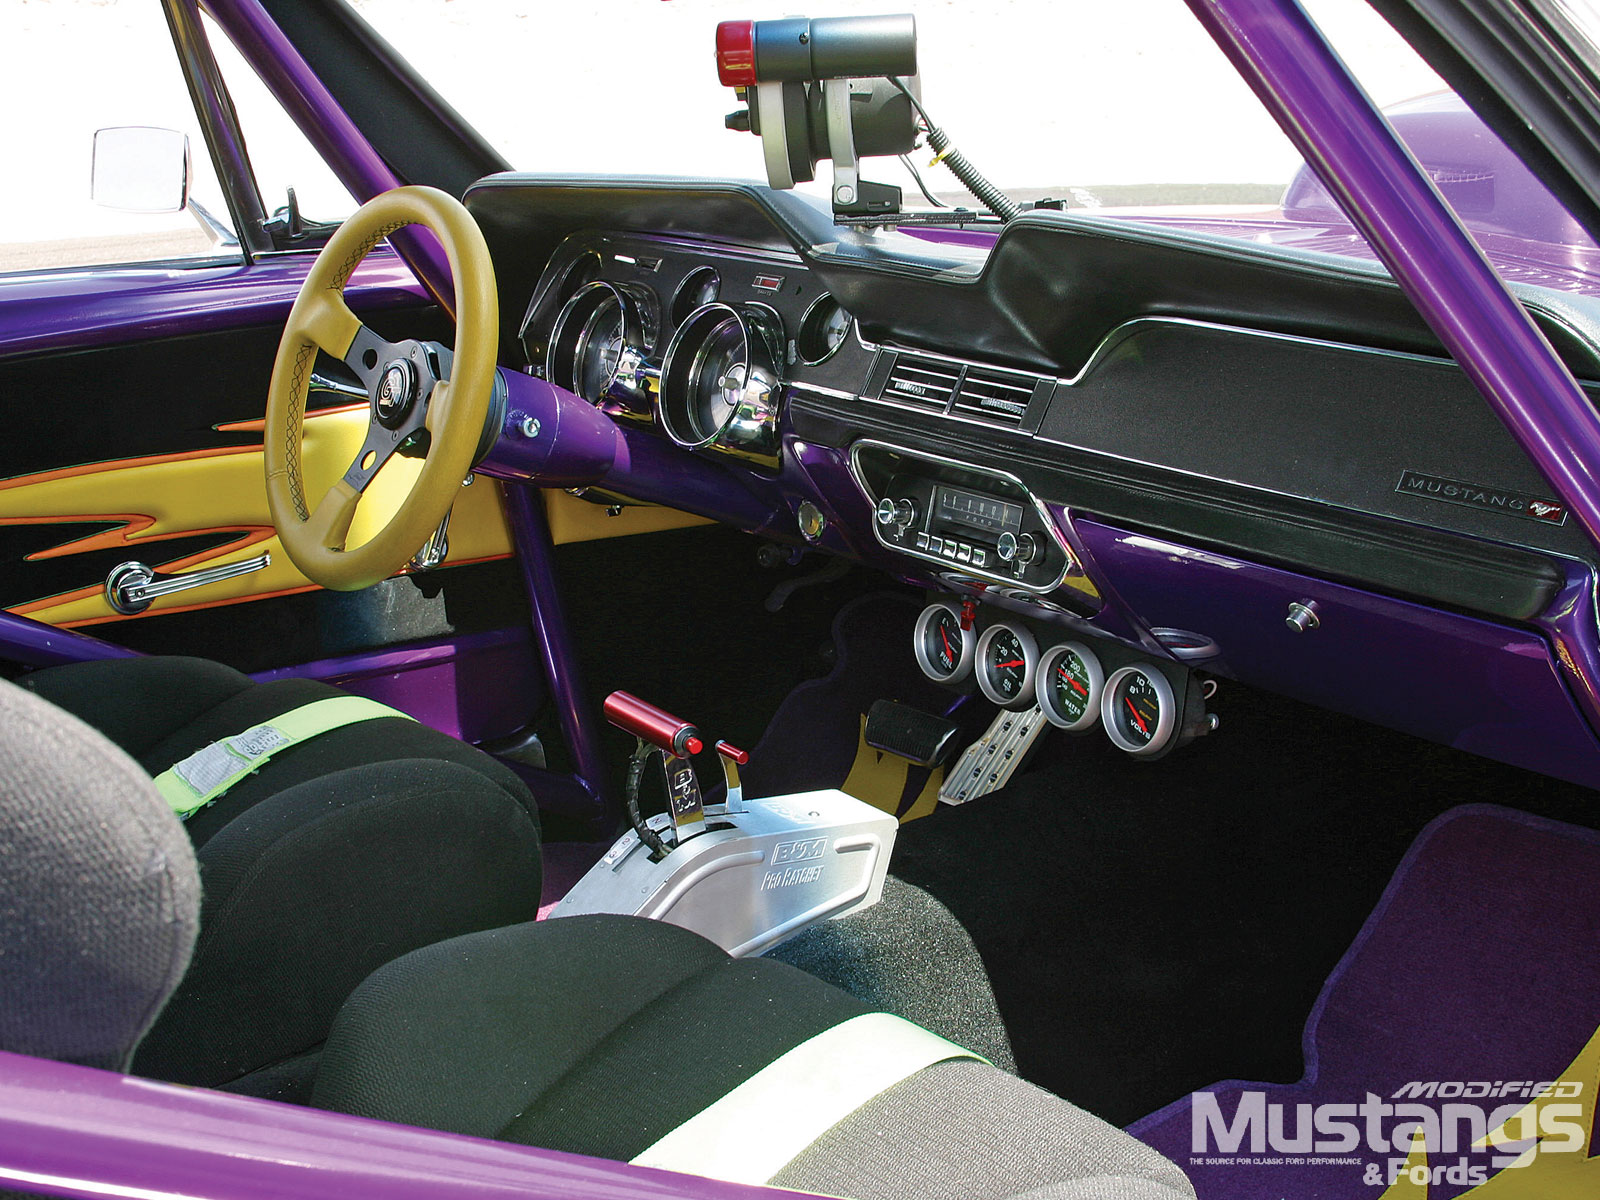 1967 Ford Mustang Coupe Interior